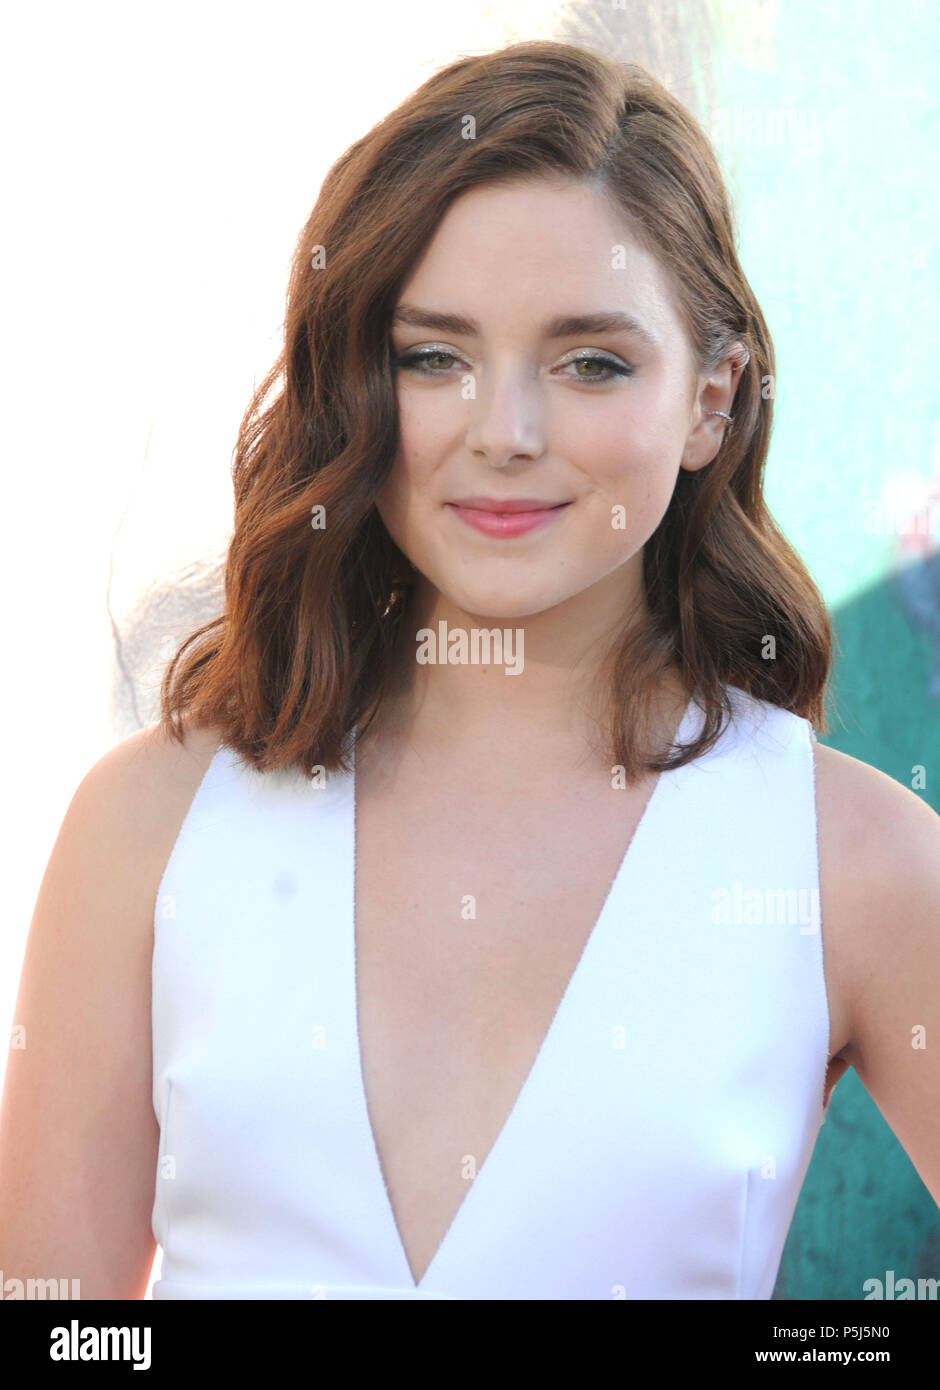 Madison Davenport Nude Photos 7